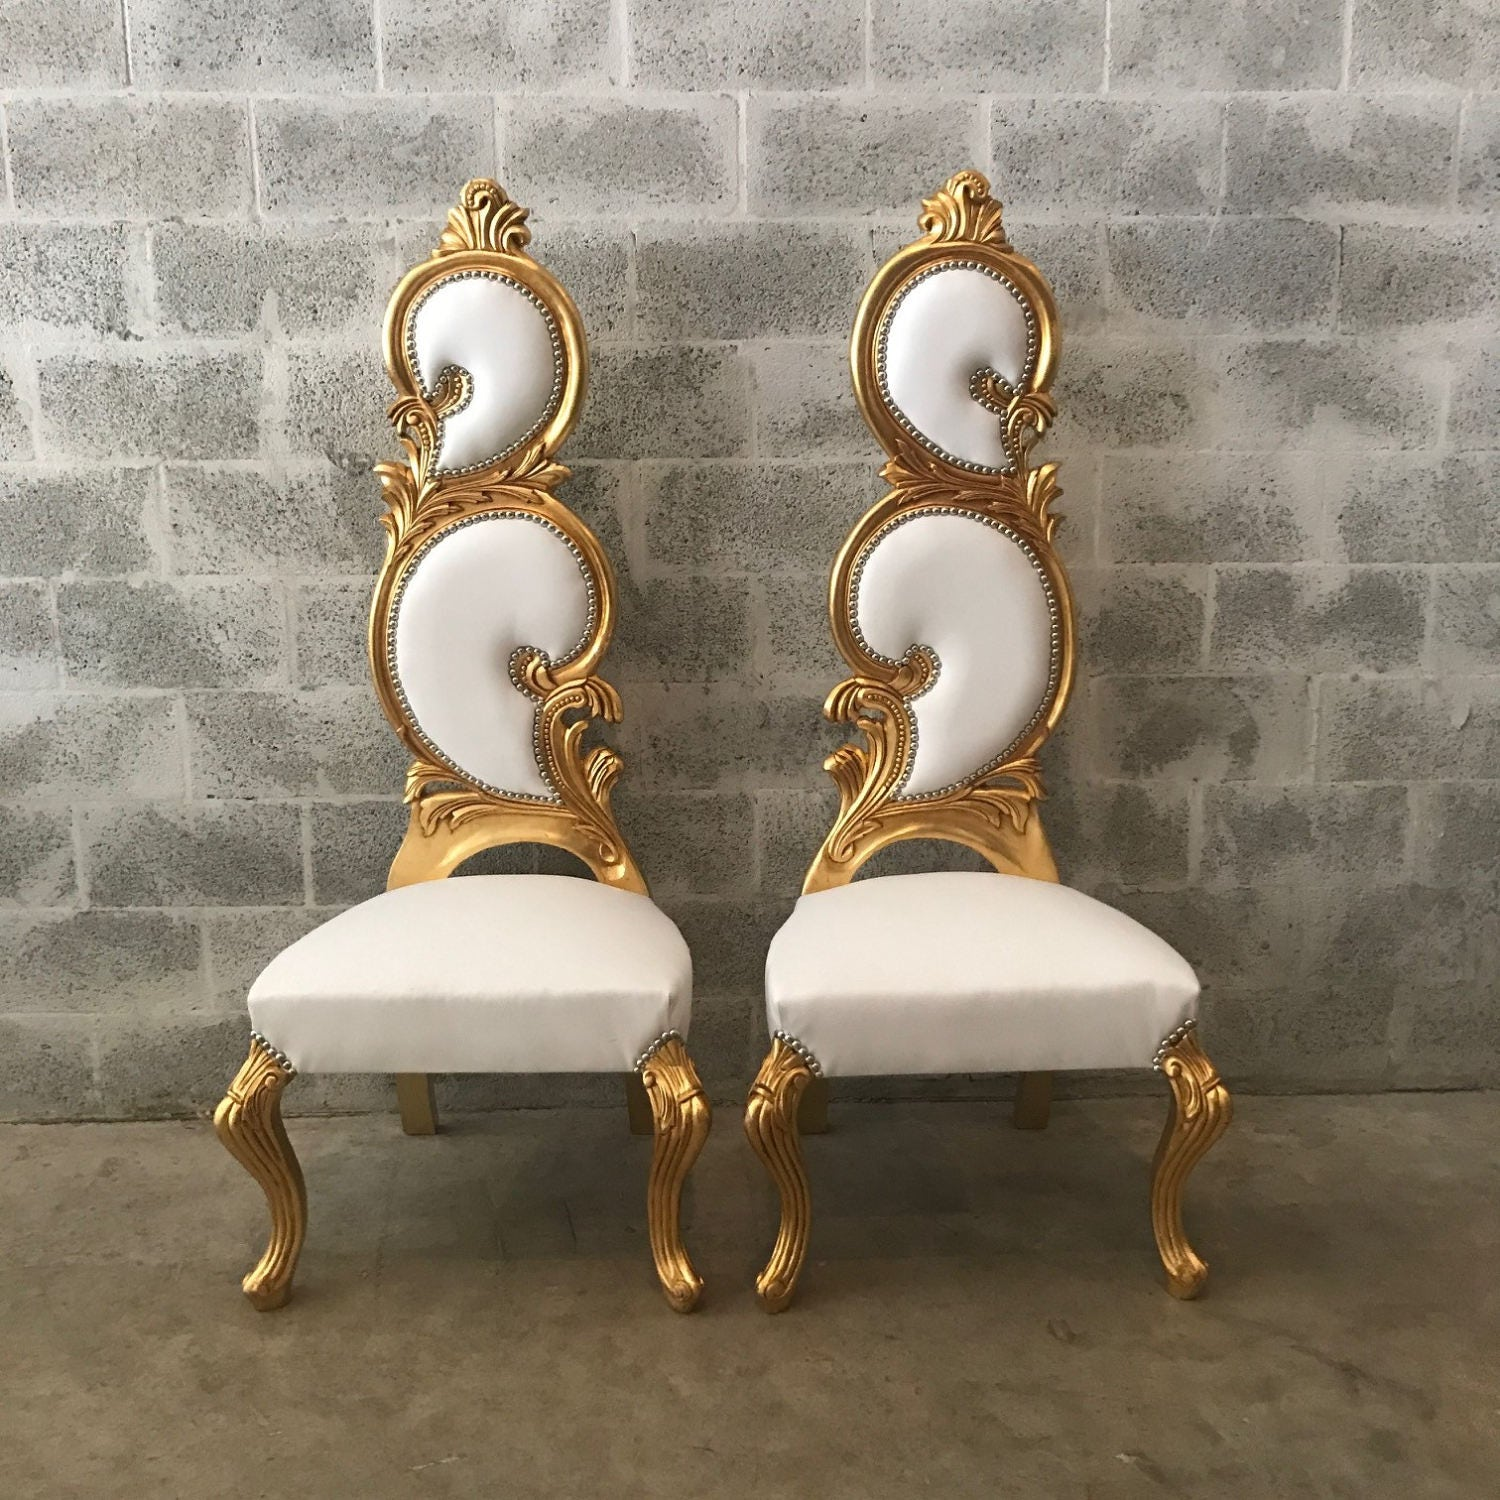 Italian Baroque Throne Chair High Back Reproduction White